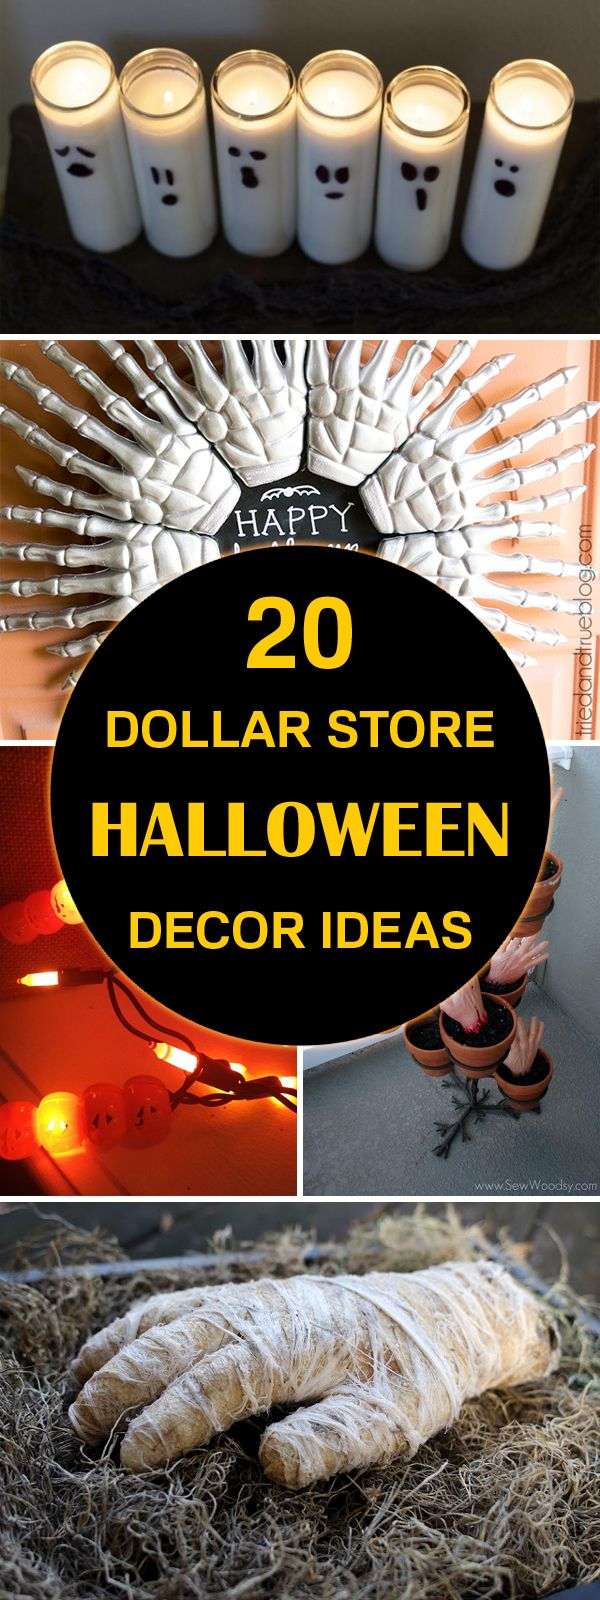 25 best ideas about diy halloween decorations on Halloween decoration diy cheap